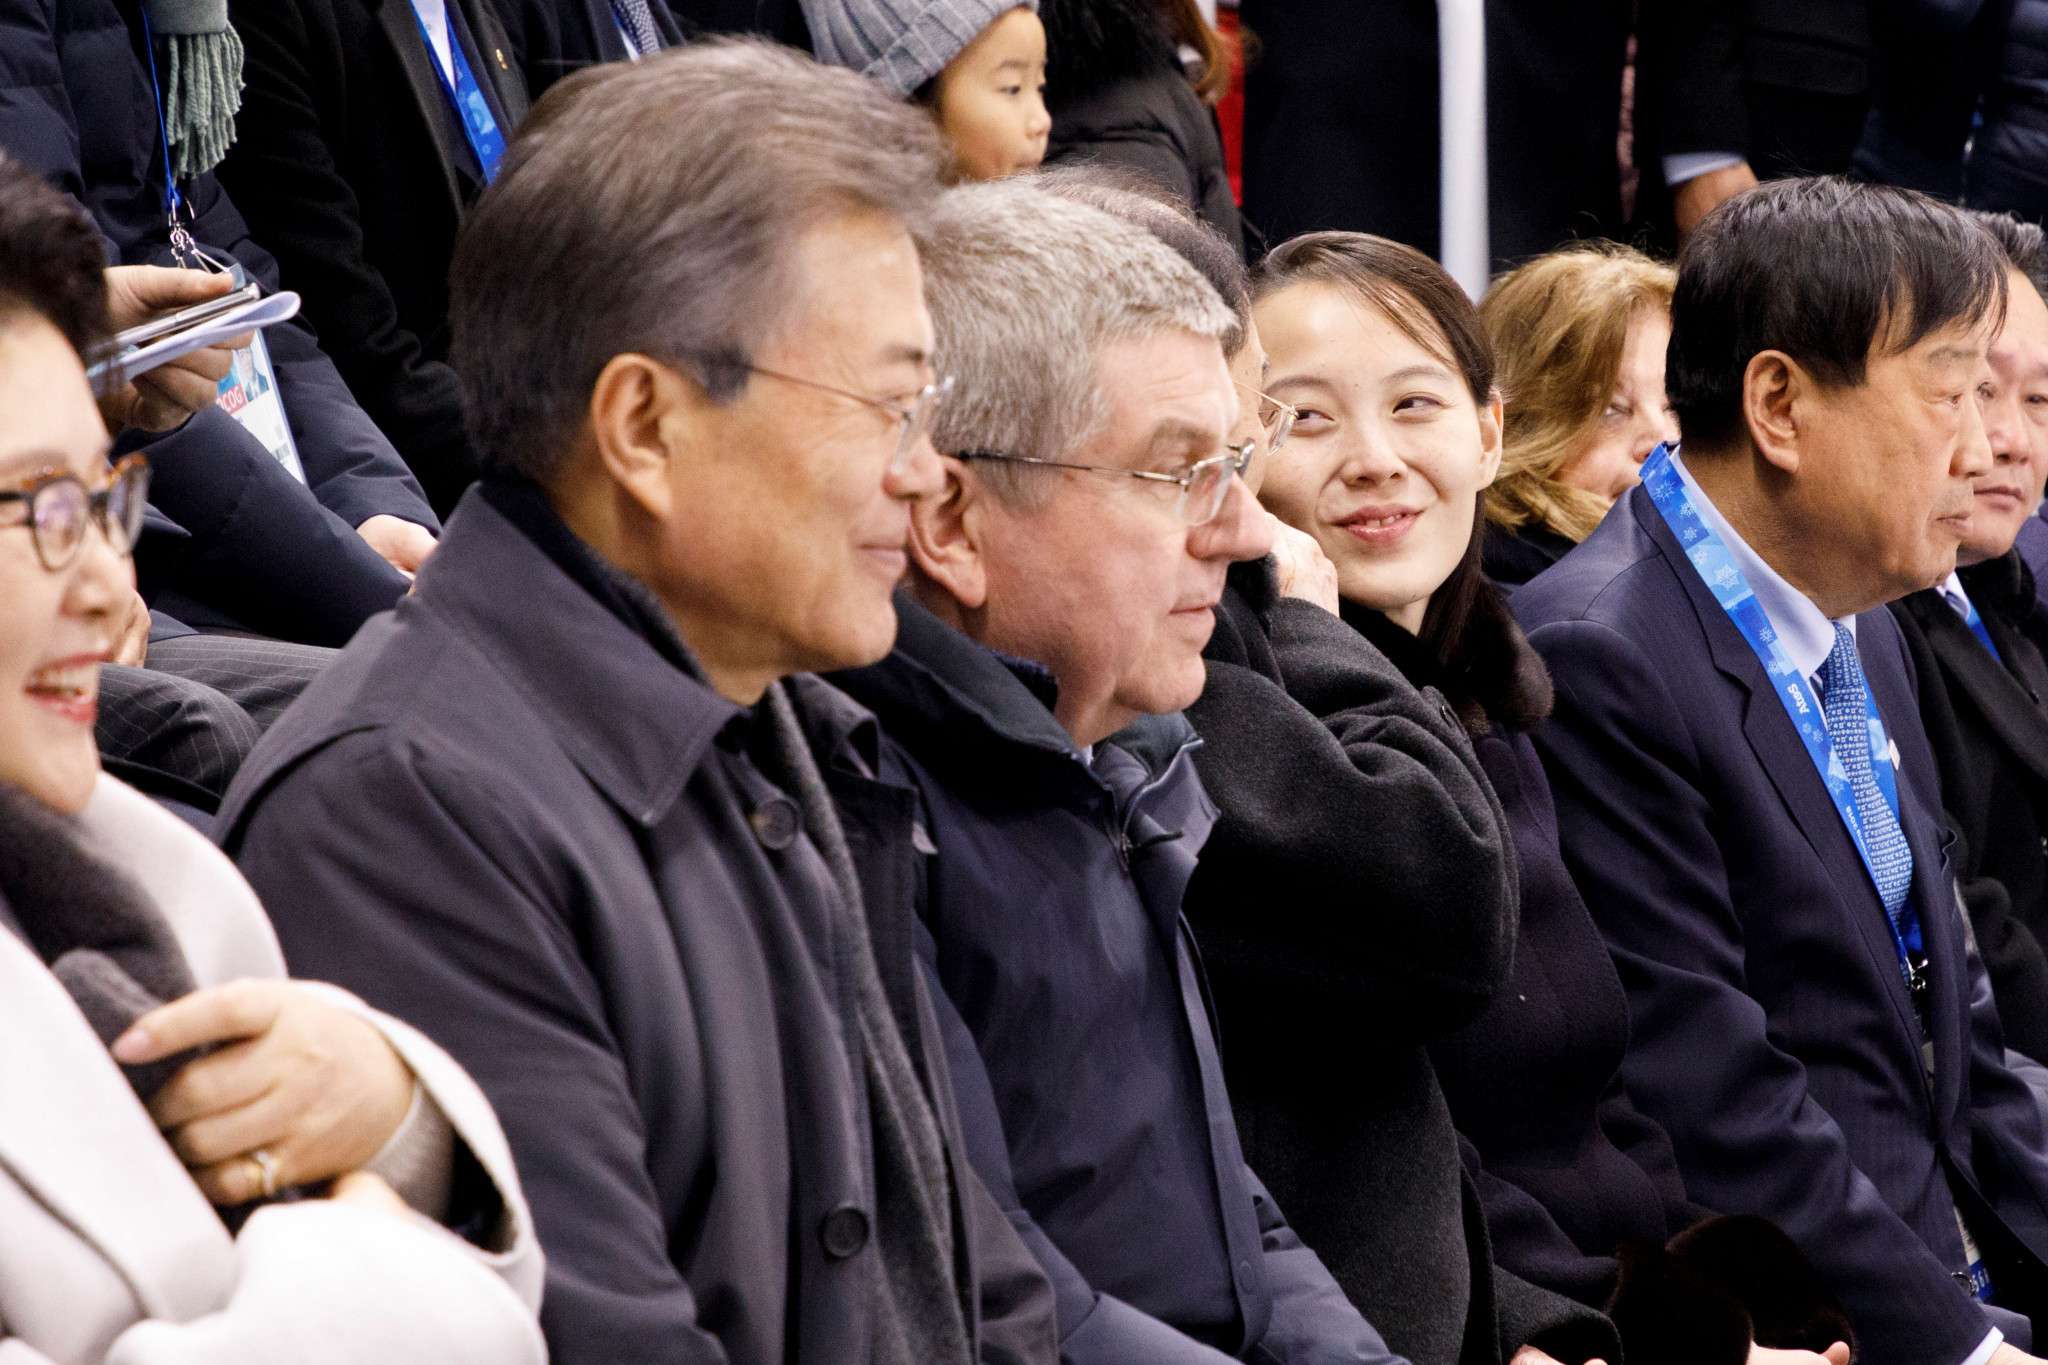 The historic first match of the unified Korean team at Pyeongchang 2018 was watched by high-level officials including South Korean President Moon Jae-in and Kim Jong-un's sister Kim Yo-jong ©Getty Images